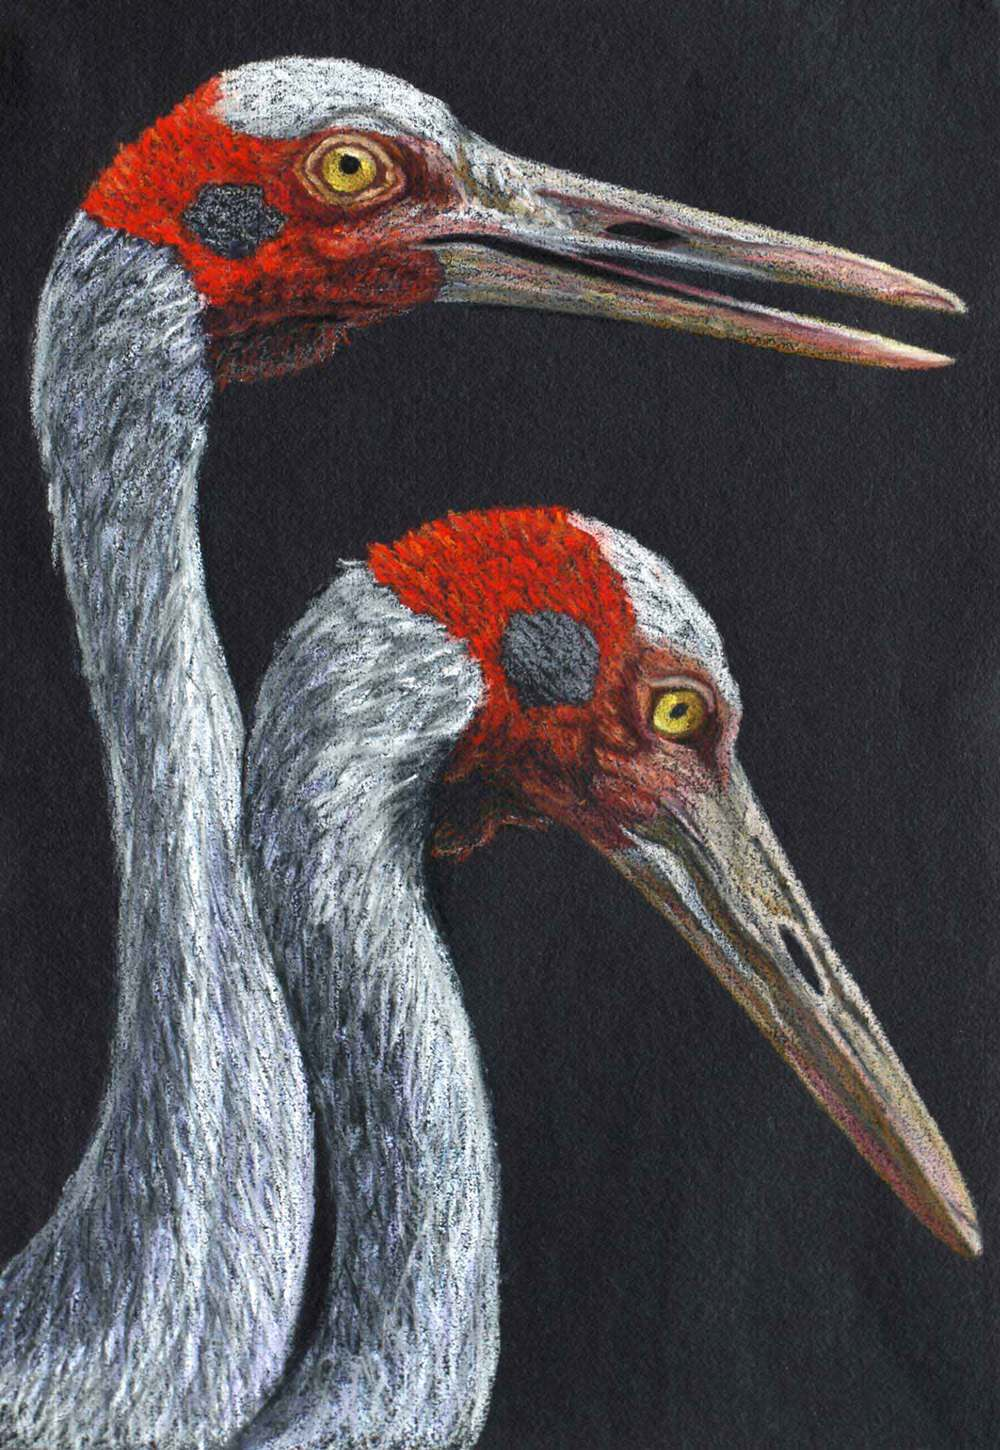 brolga    30 x 21 cm Pastel on handmade paper sold